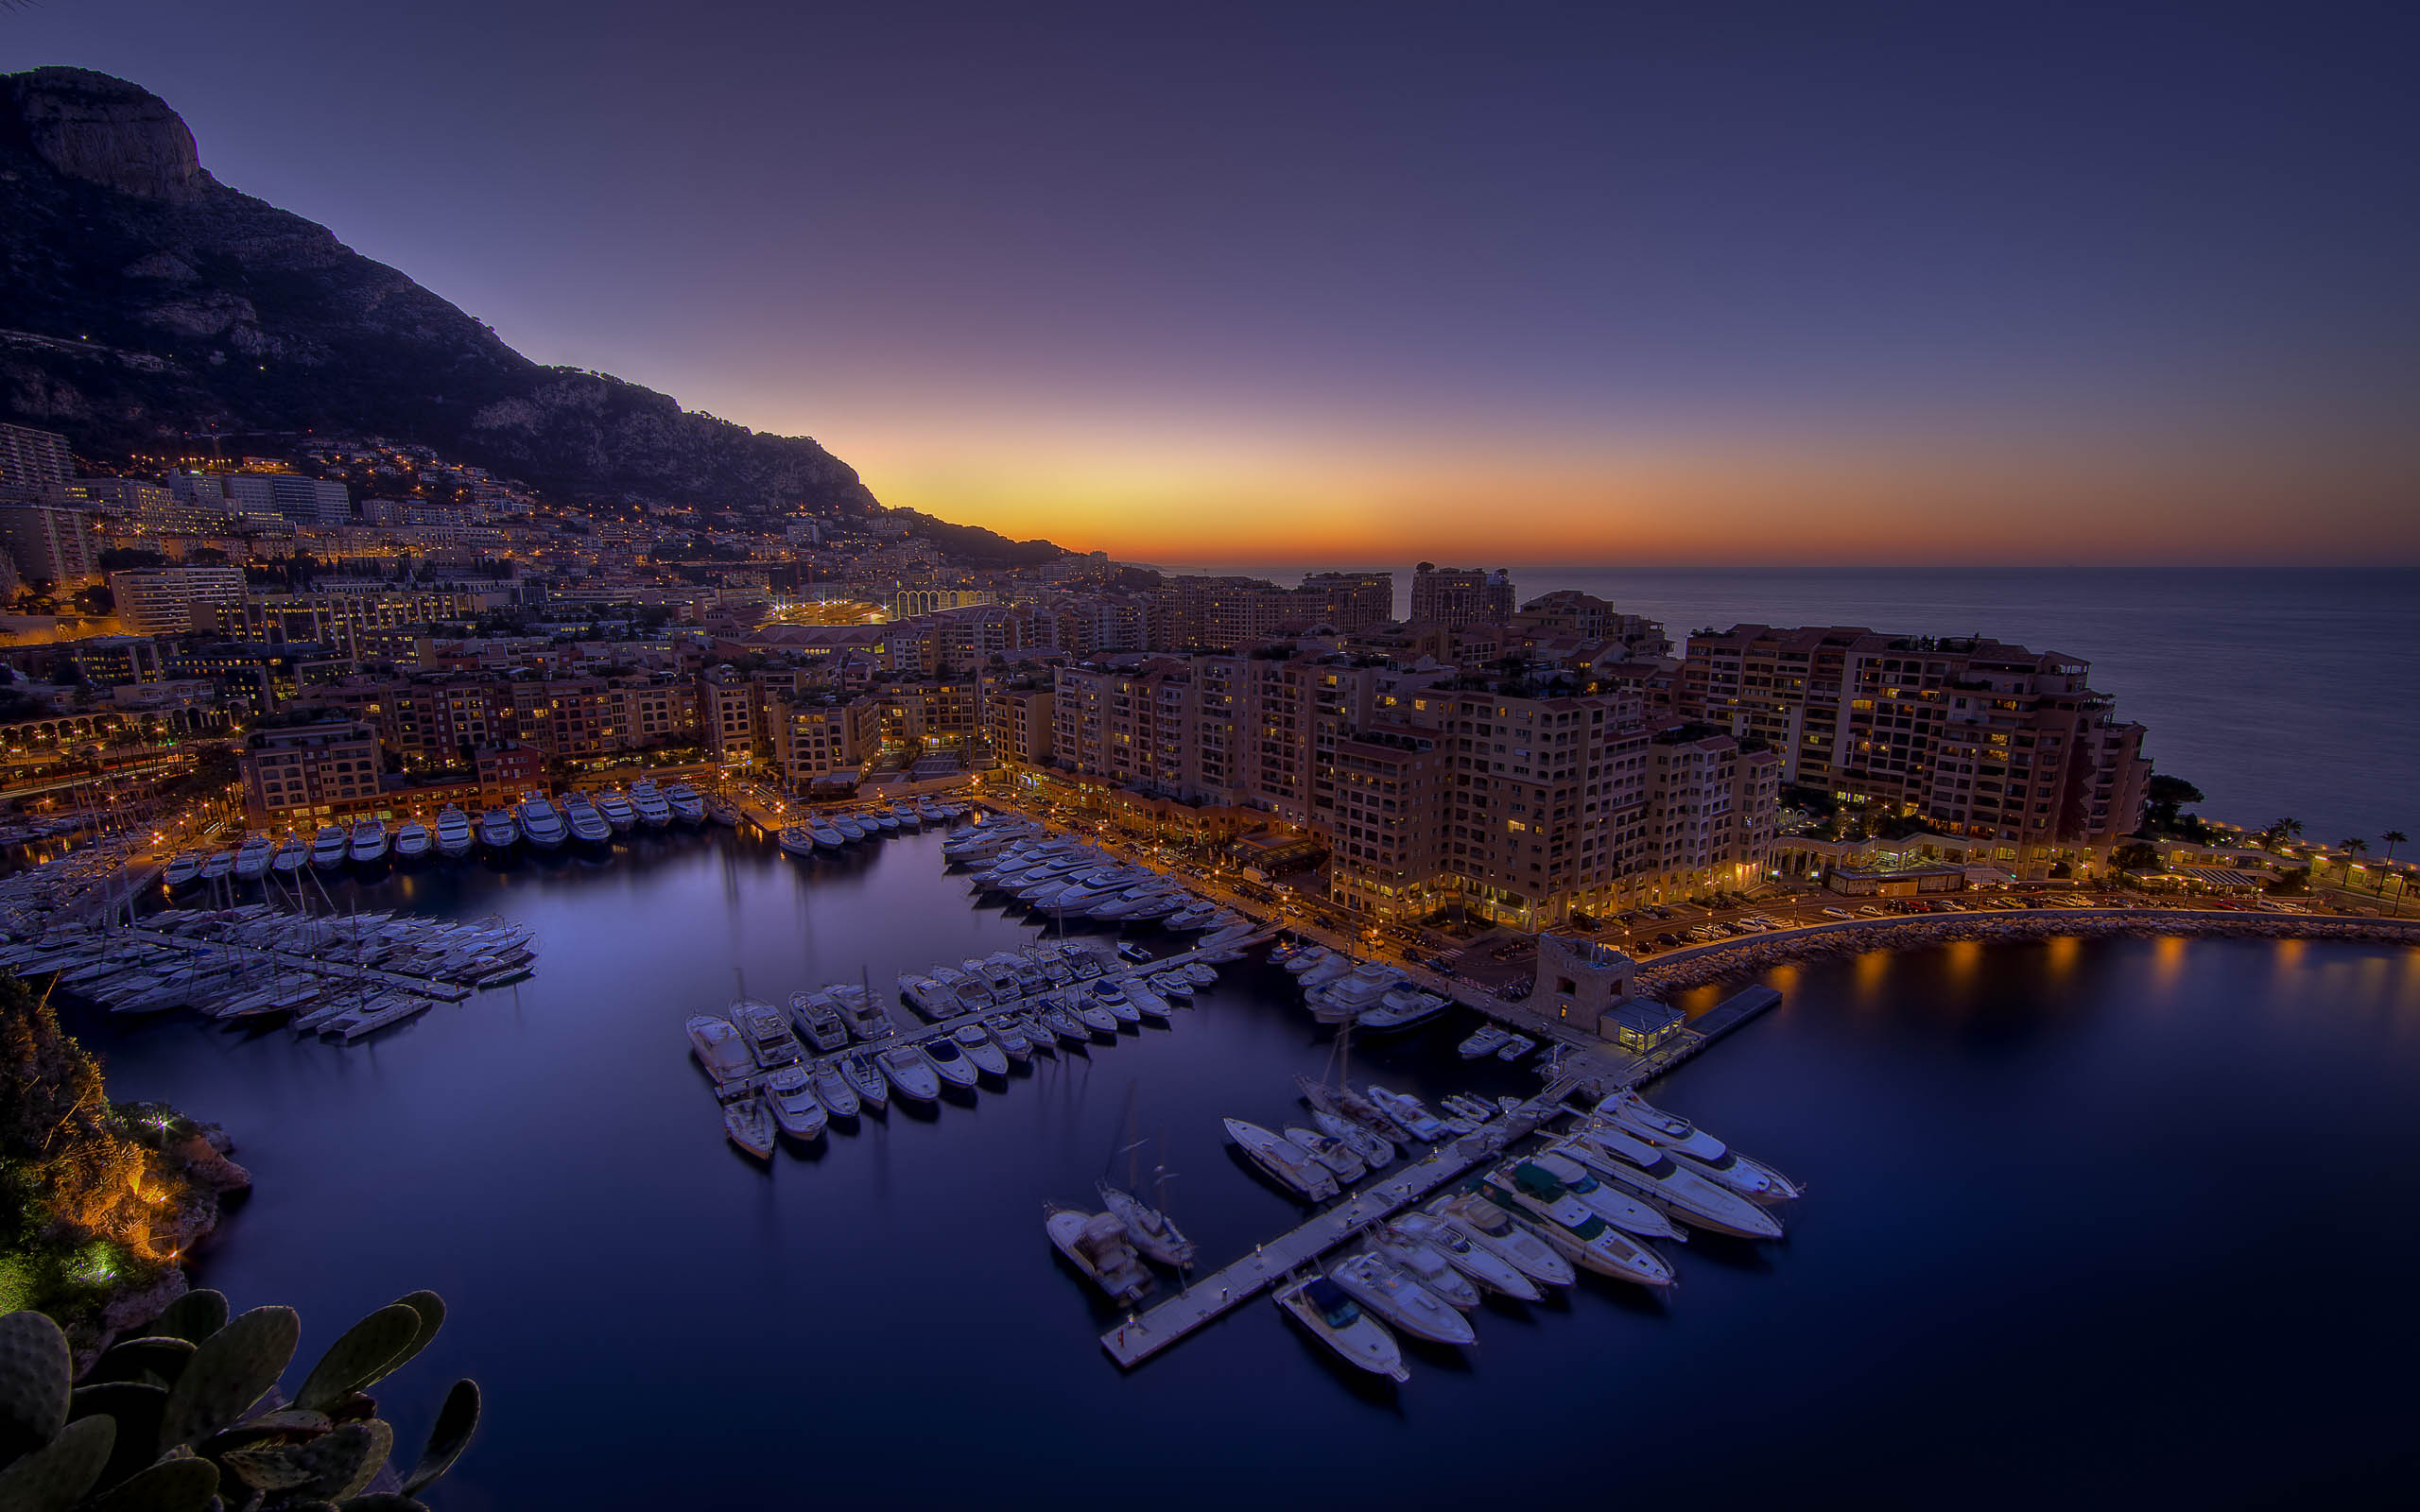 Monaco beautiful hd wallpapers 2015 all hd wallpapers for Home 2015 wallpaper hd